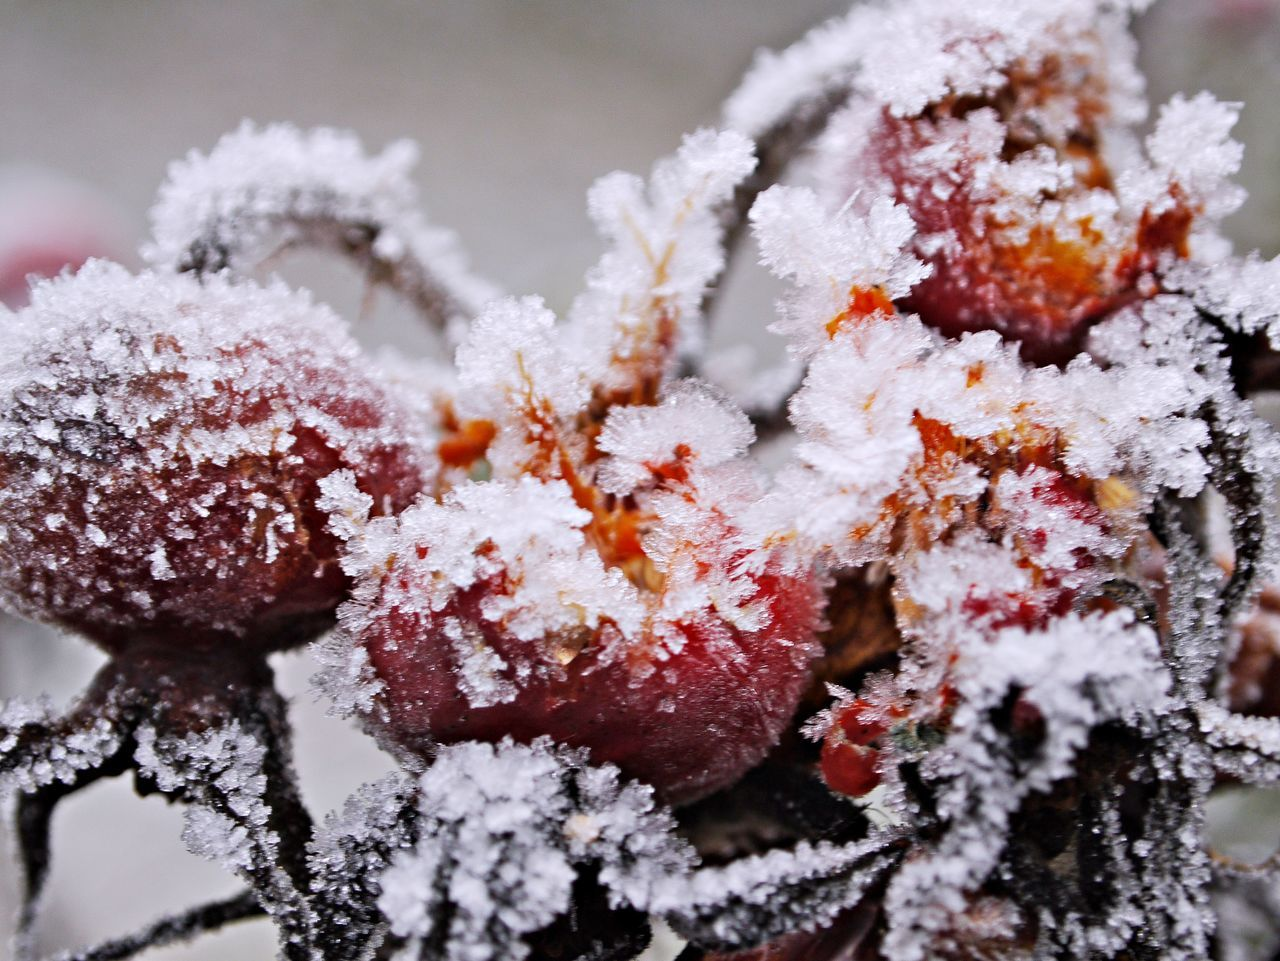 Beauty In Nature Branch Close-up Cold Temperature Day Fragility Freshness Growth Ice Nature No People Outdoors Red Rose Hips Snow Tree White Color Winter